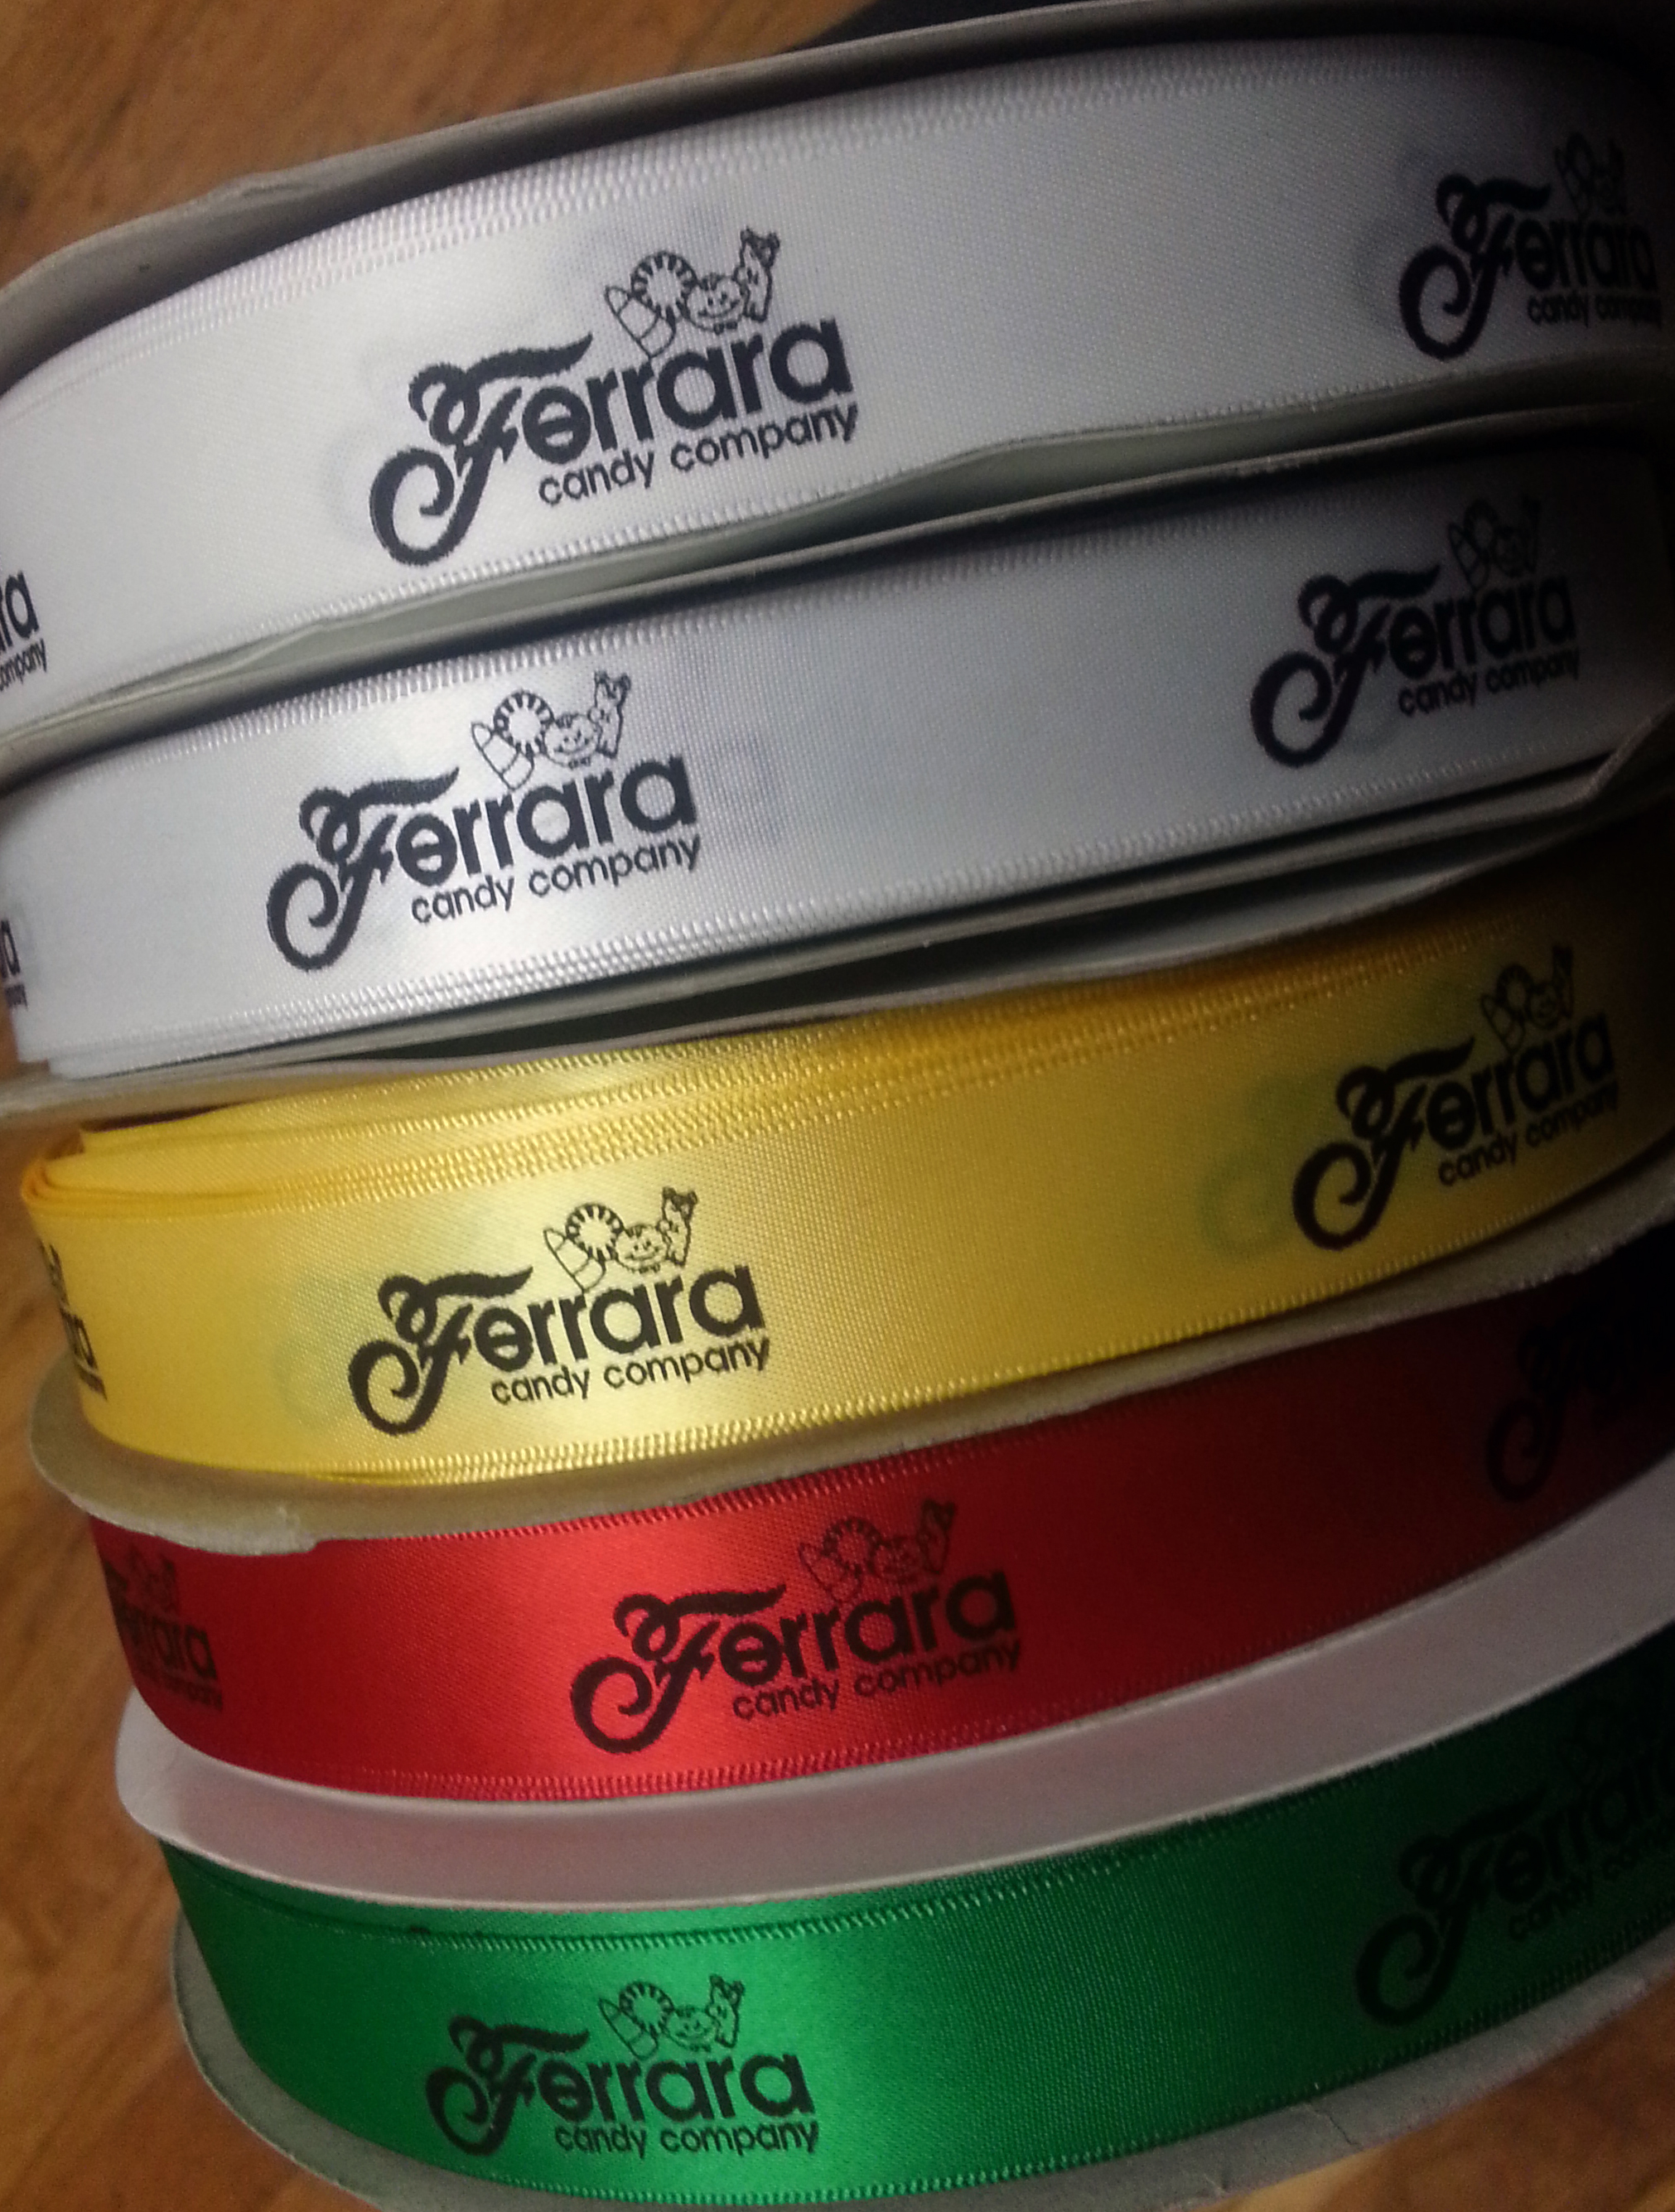 Ferrara Candy company, ferrara candy, custom logo ribbon, logo ribbon, personalized printed ribbon, printed logo ribbon, custom ribbon, company ribbon, corporate ribbon, christmas ribbon, gift ribbon